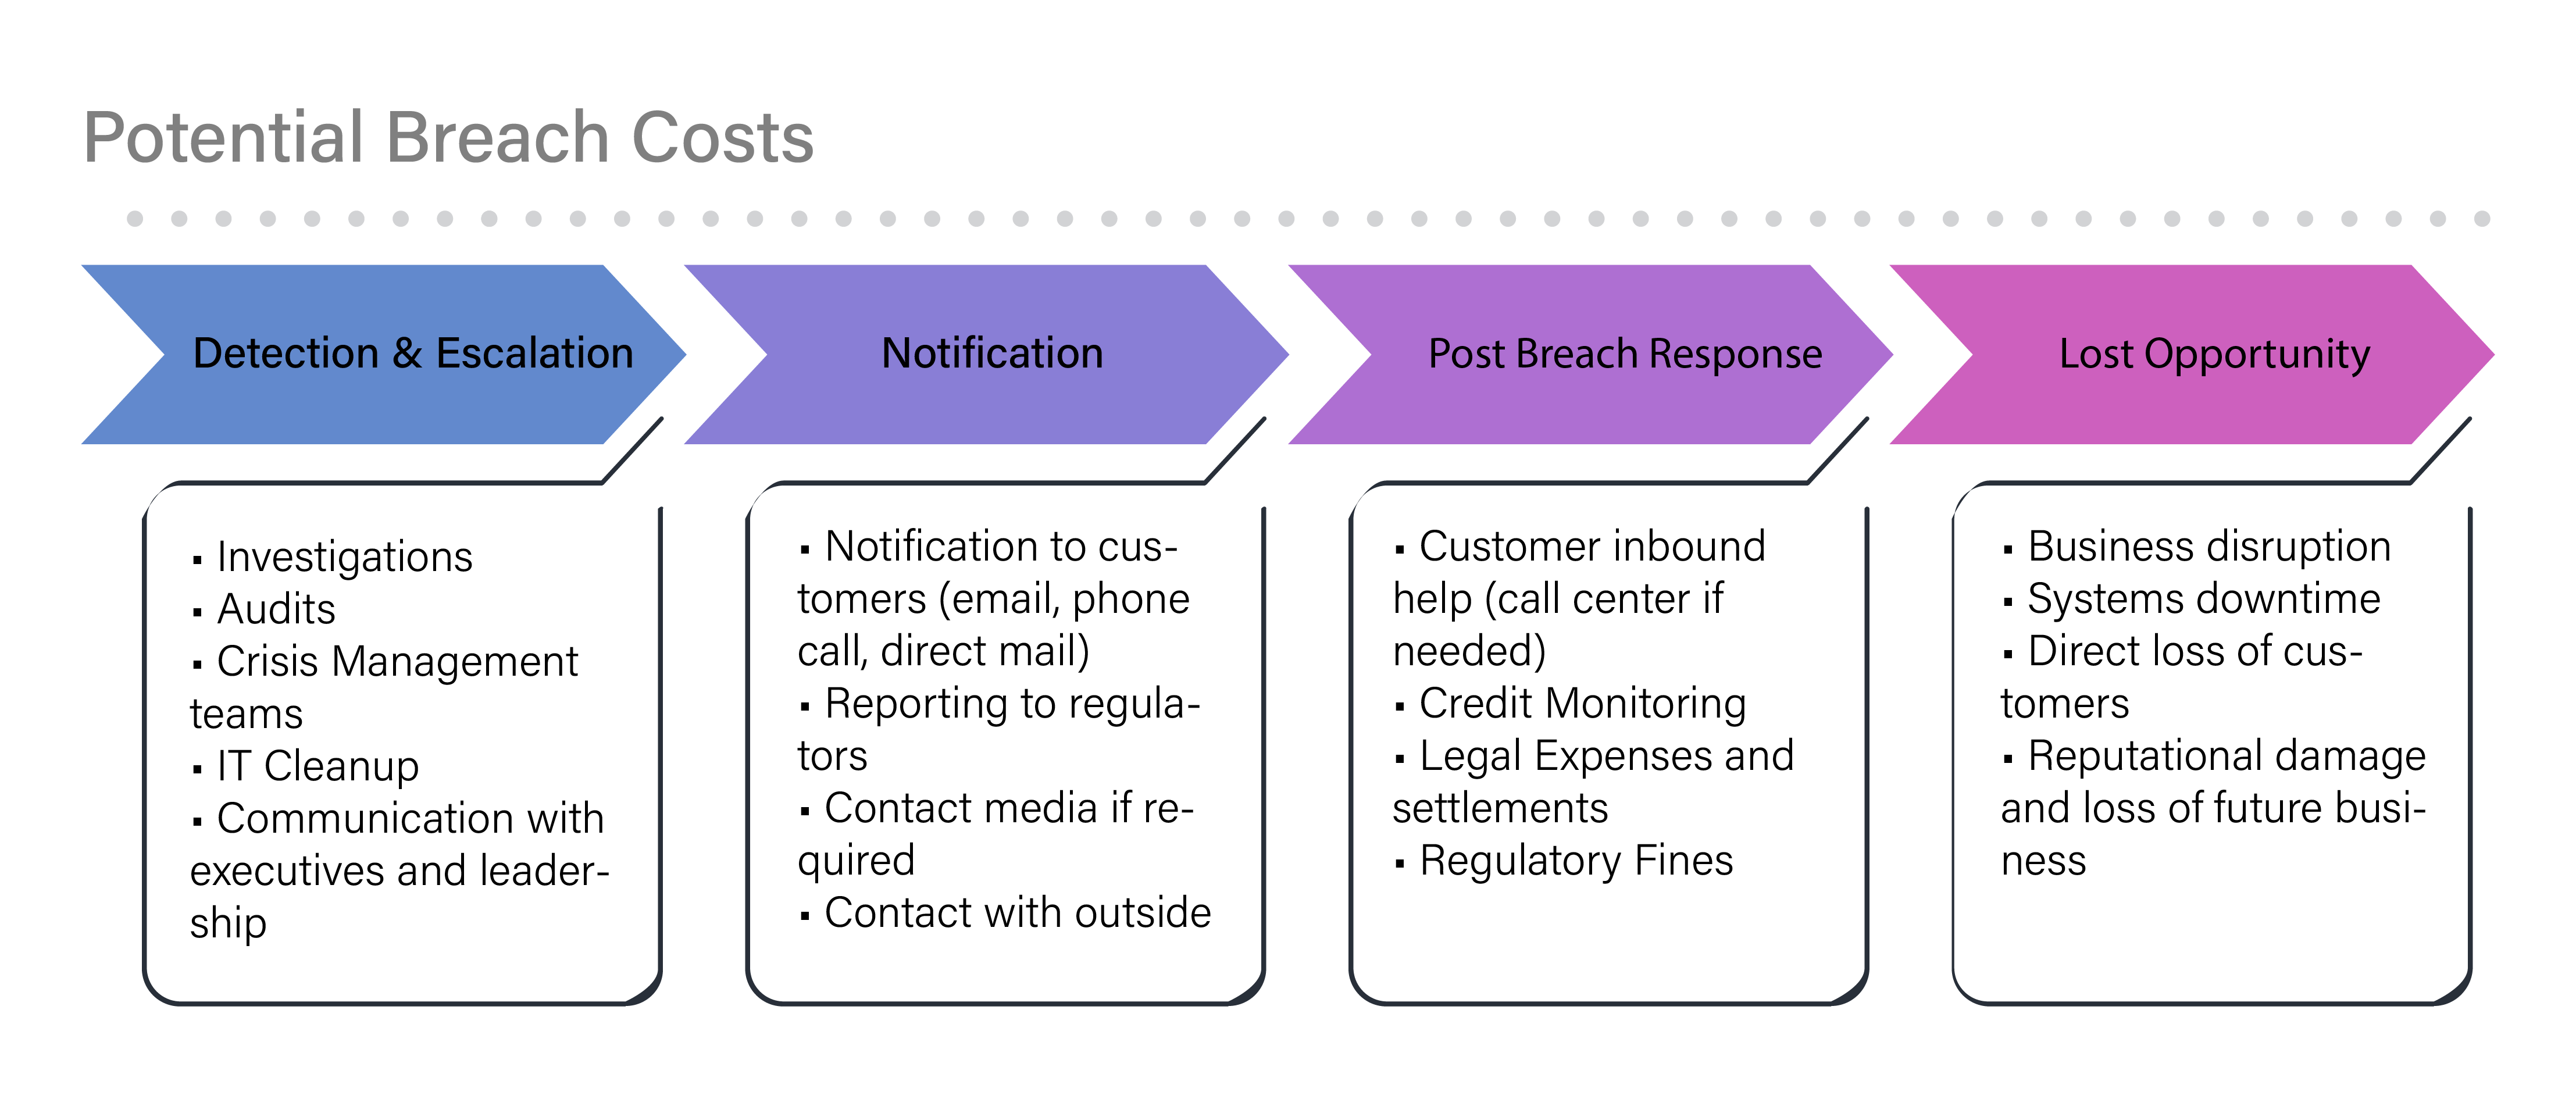 Potential Breach Costs